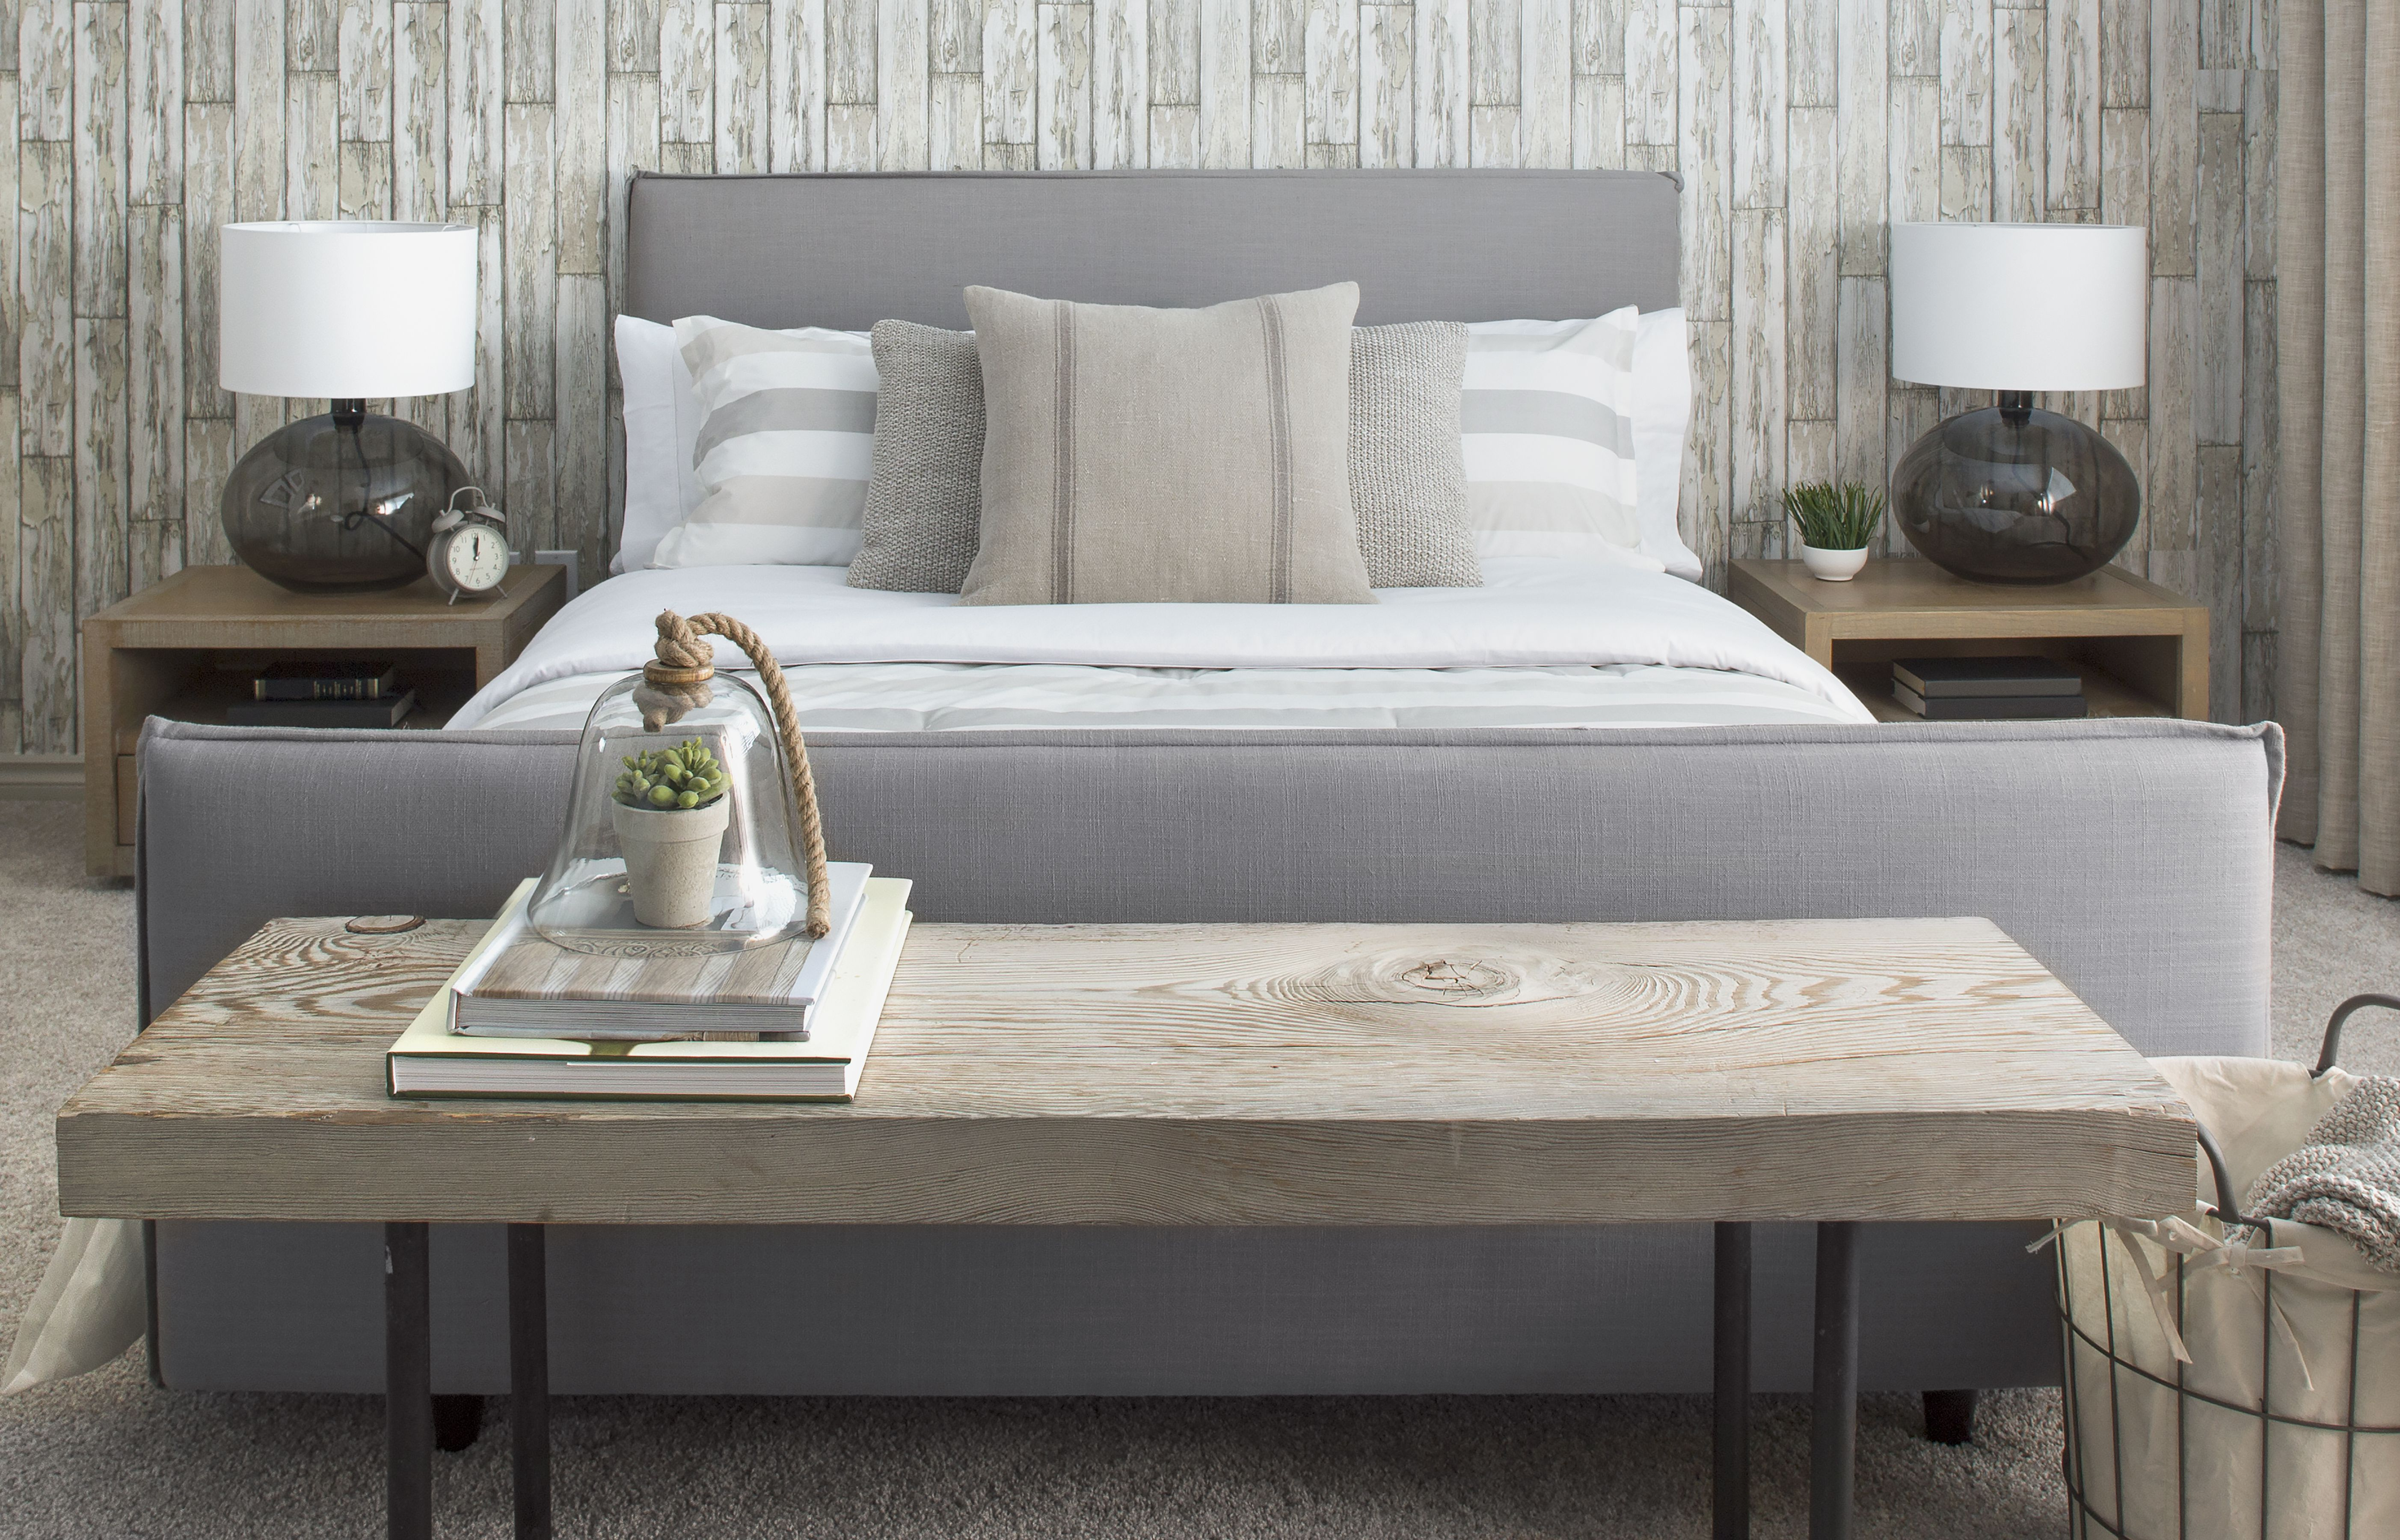 11 Great Furniture Ideas for the Space at the Foot of Your Bed